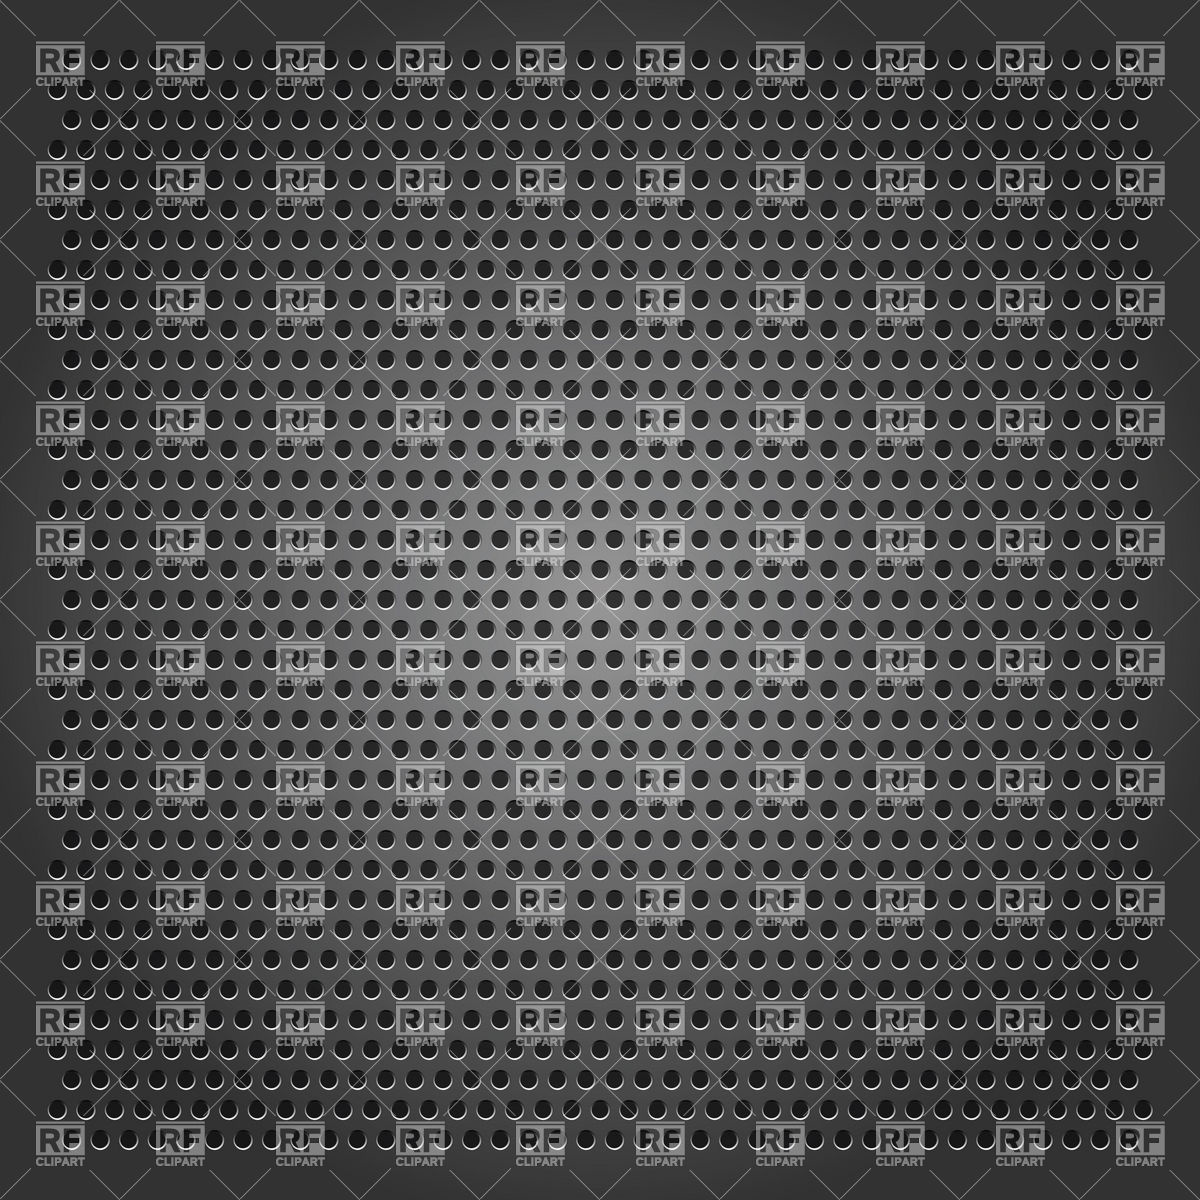 Grey perforated sheet background Vector Image #18393.